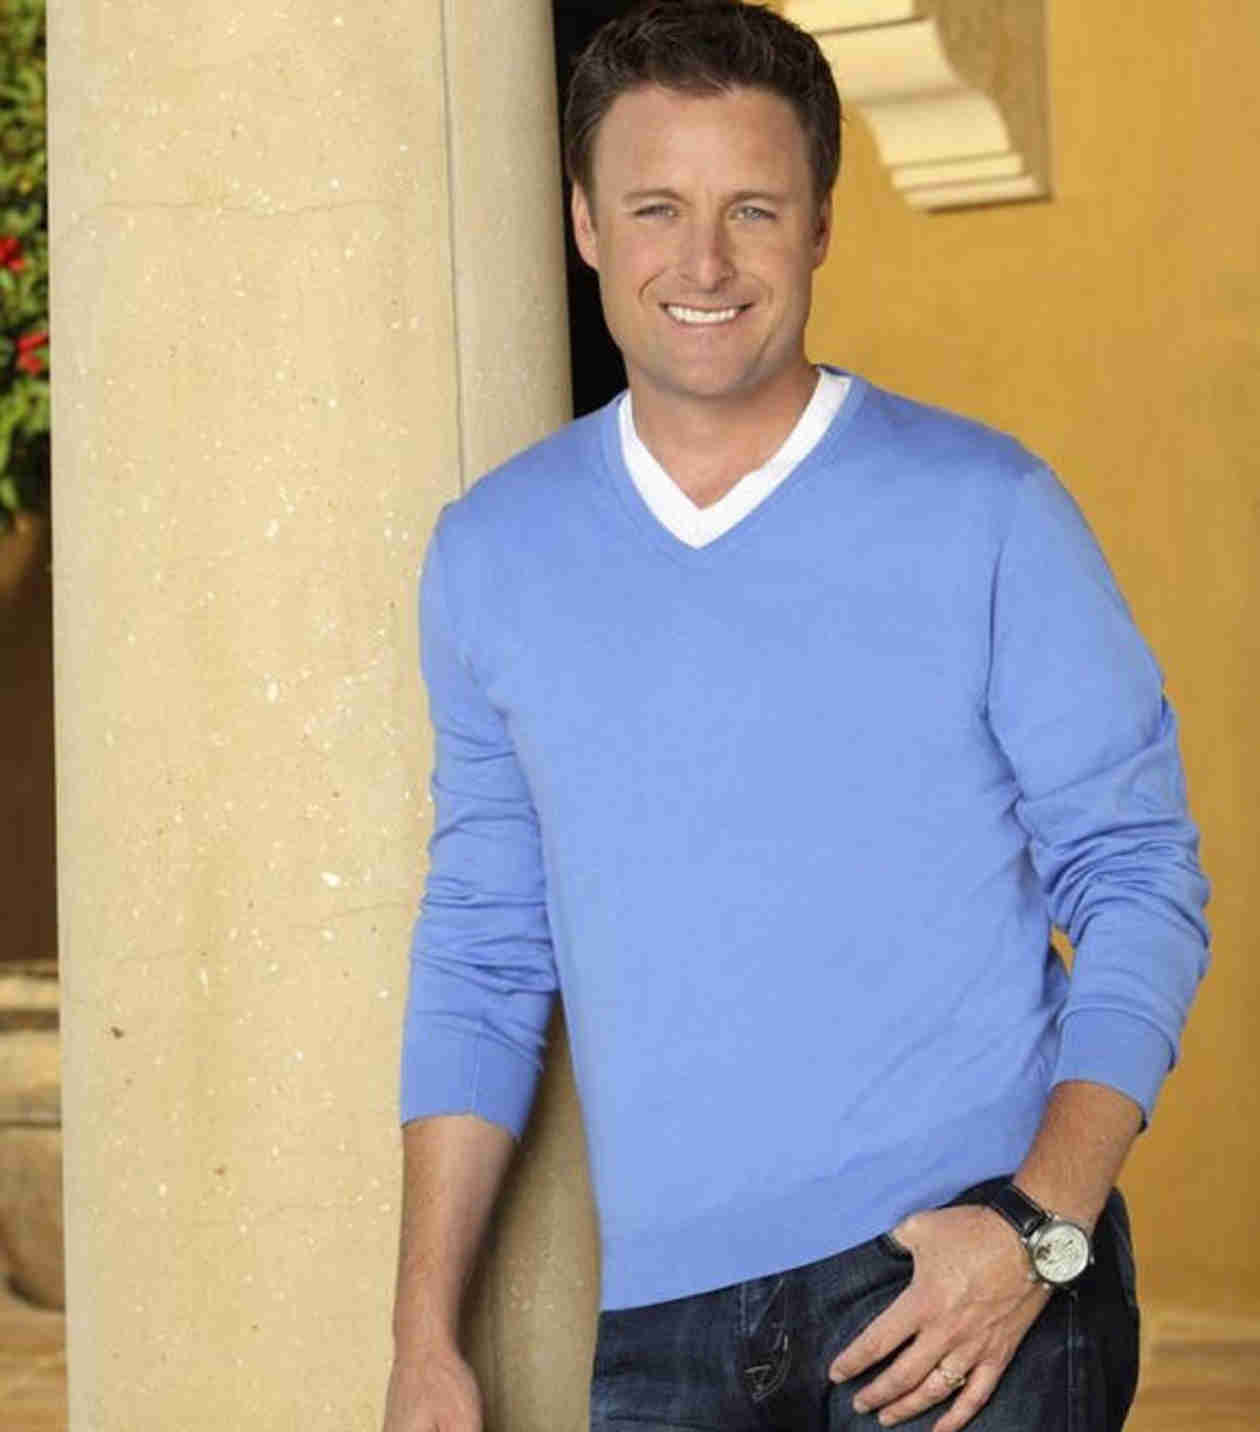 Chris Harrison: AshLee Frazier Is a Different Person On and Off Camera